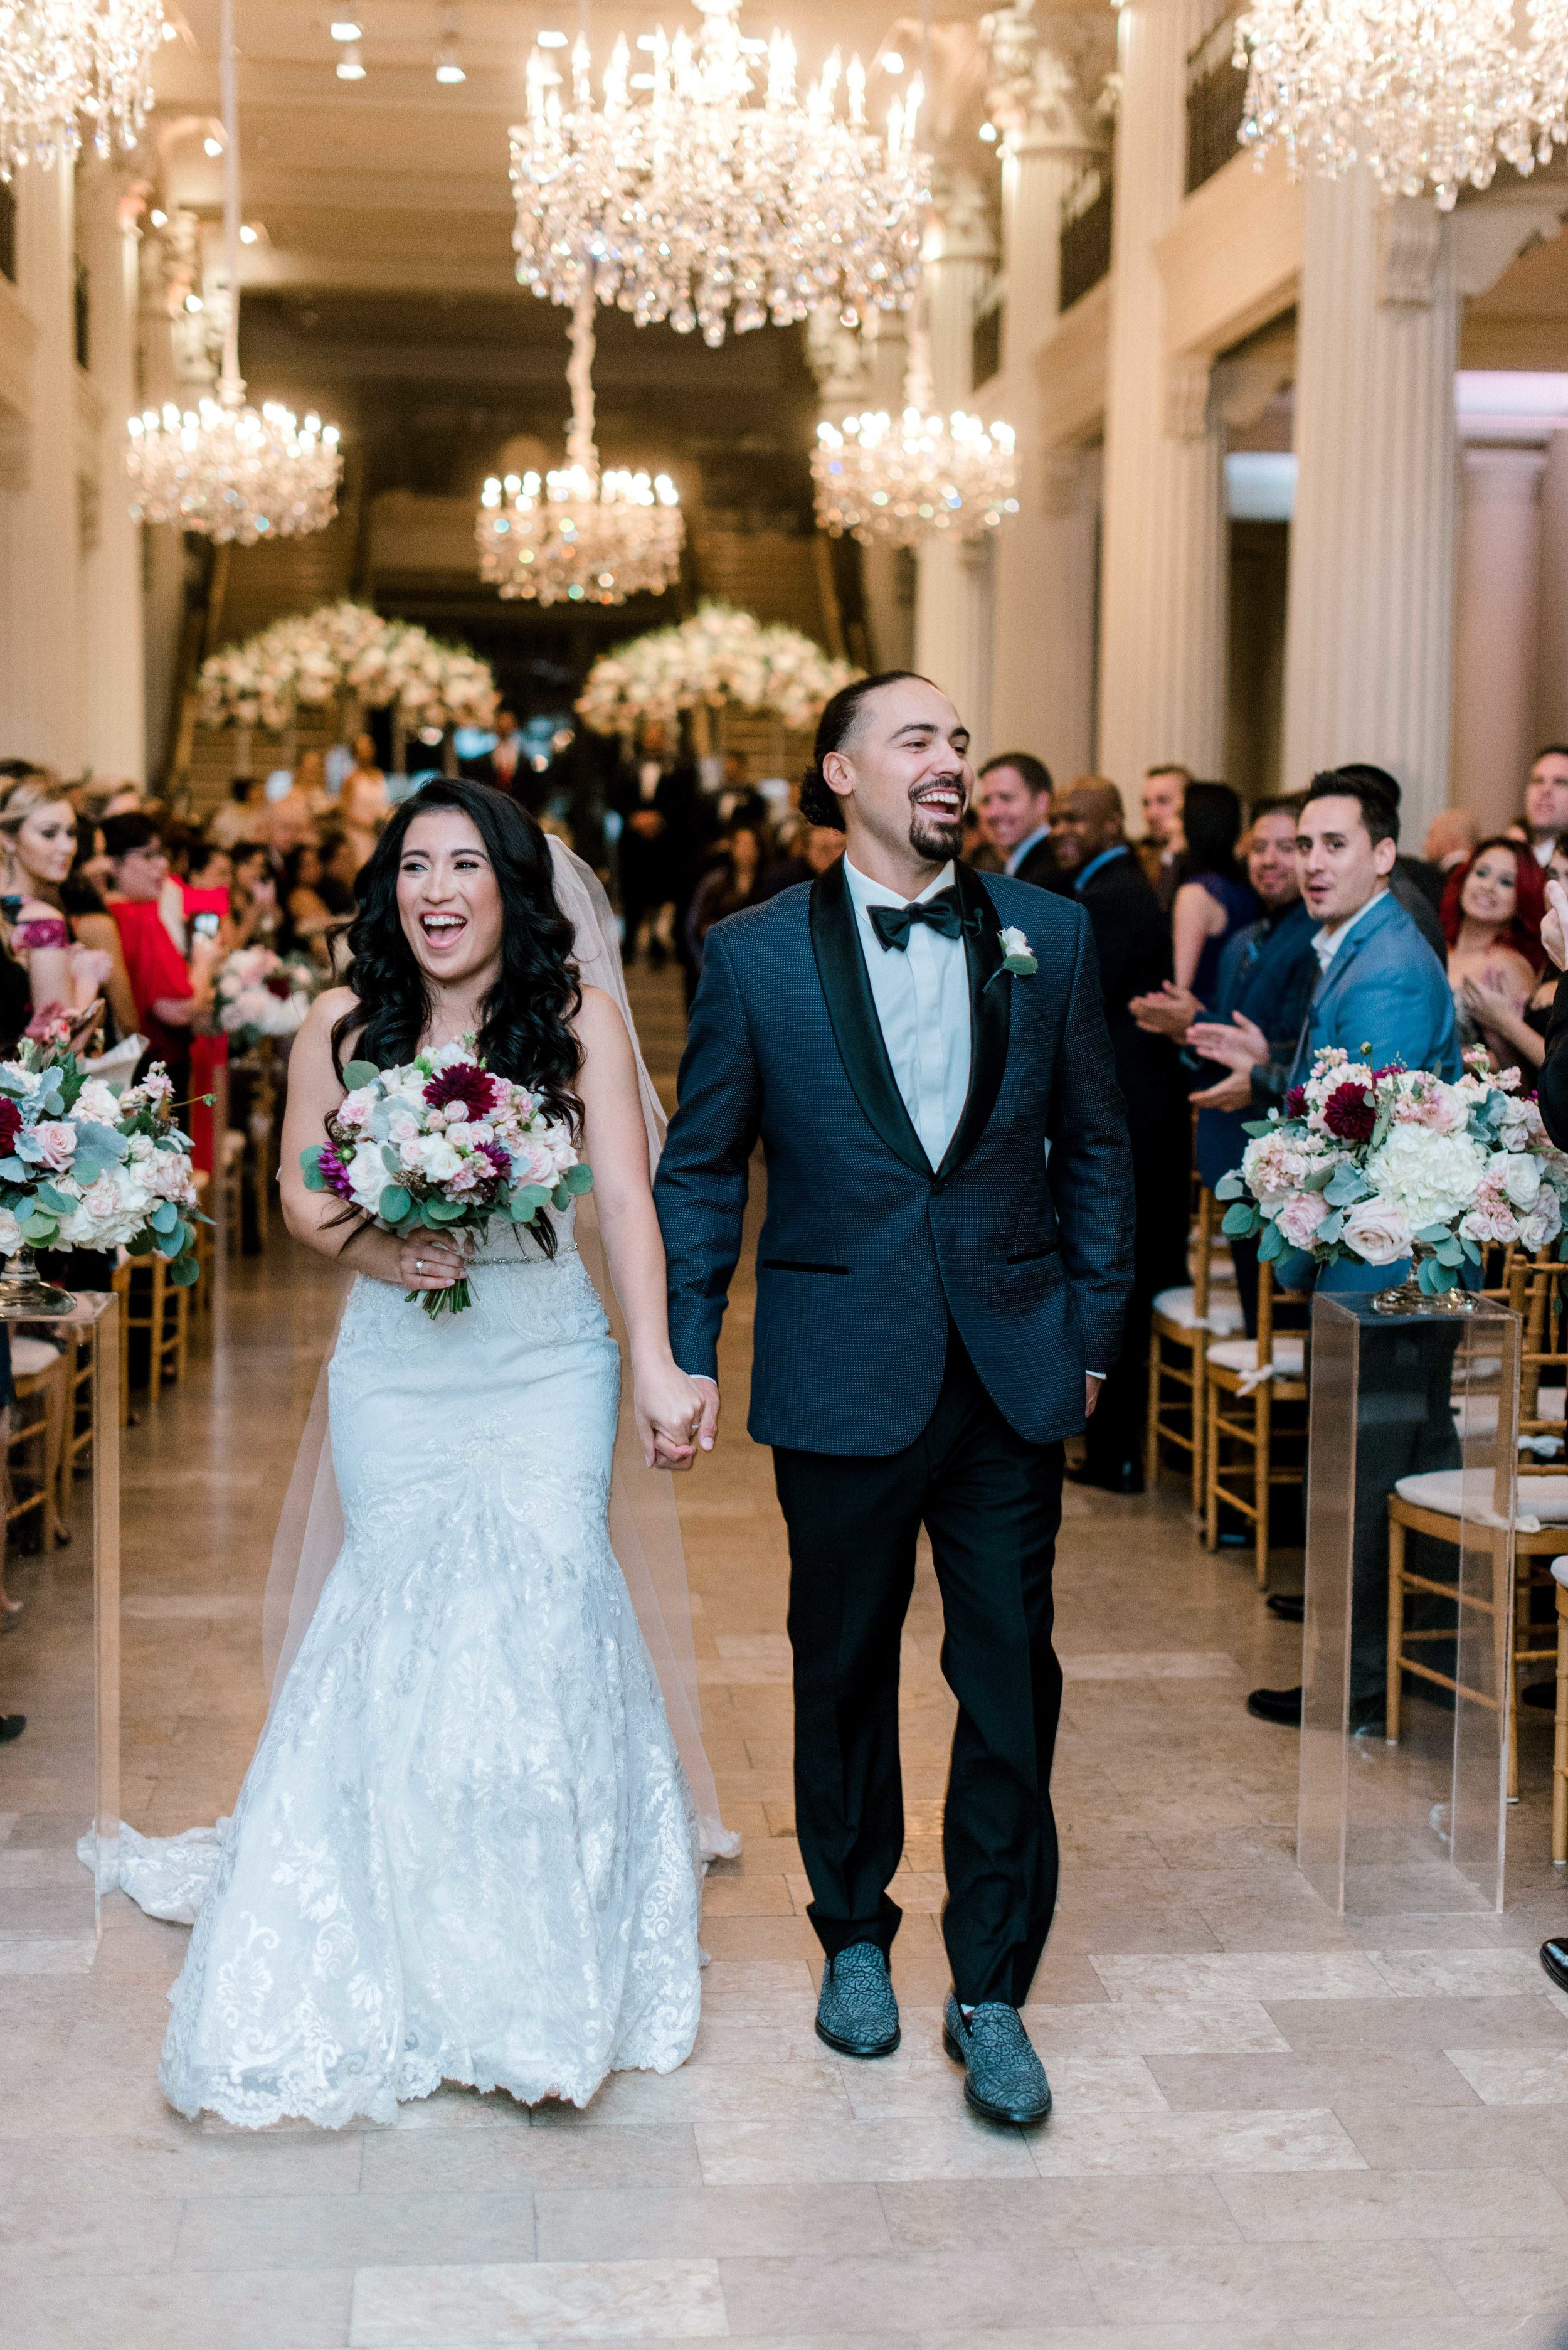 Houston-Wedding-Fine-Art-Film-Photographer-Belle-Events-Belle-of-the-Ball-Anthony-Rendon-Washington-Nationals-The-Corinthian-Style-Me-Pretty-32.jpg